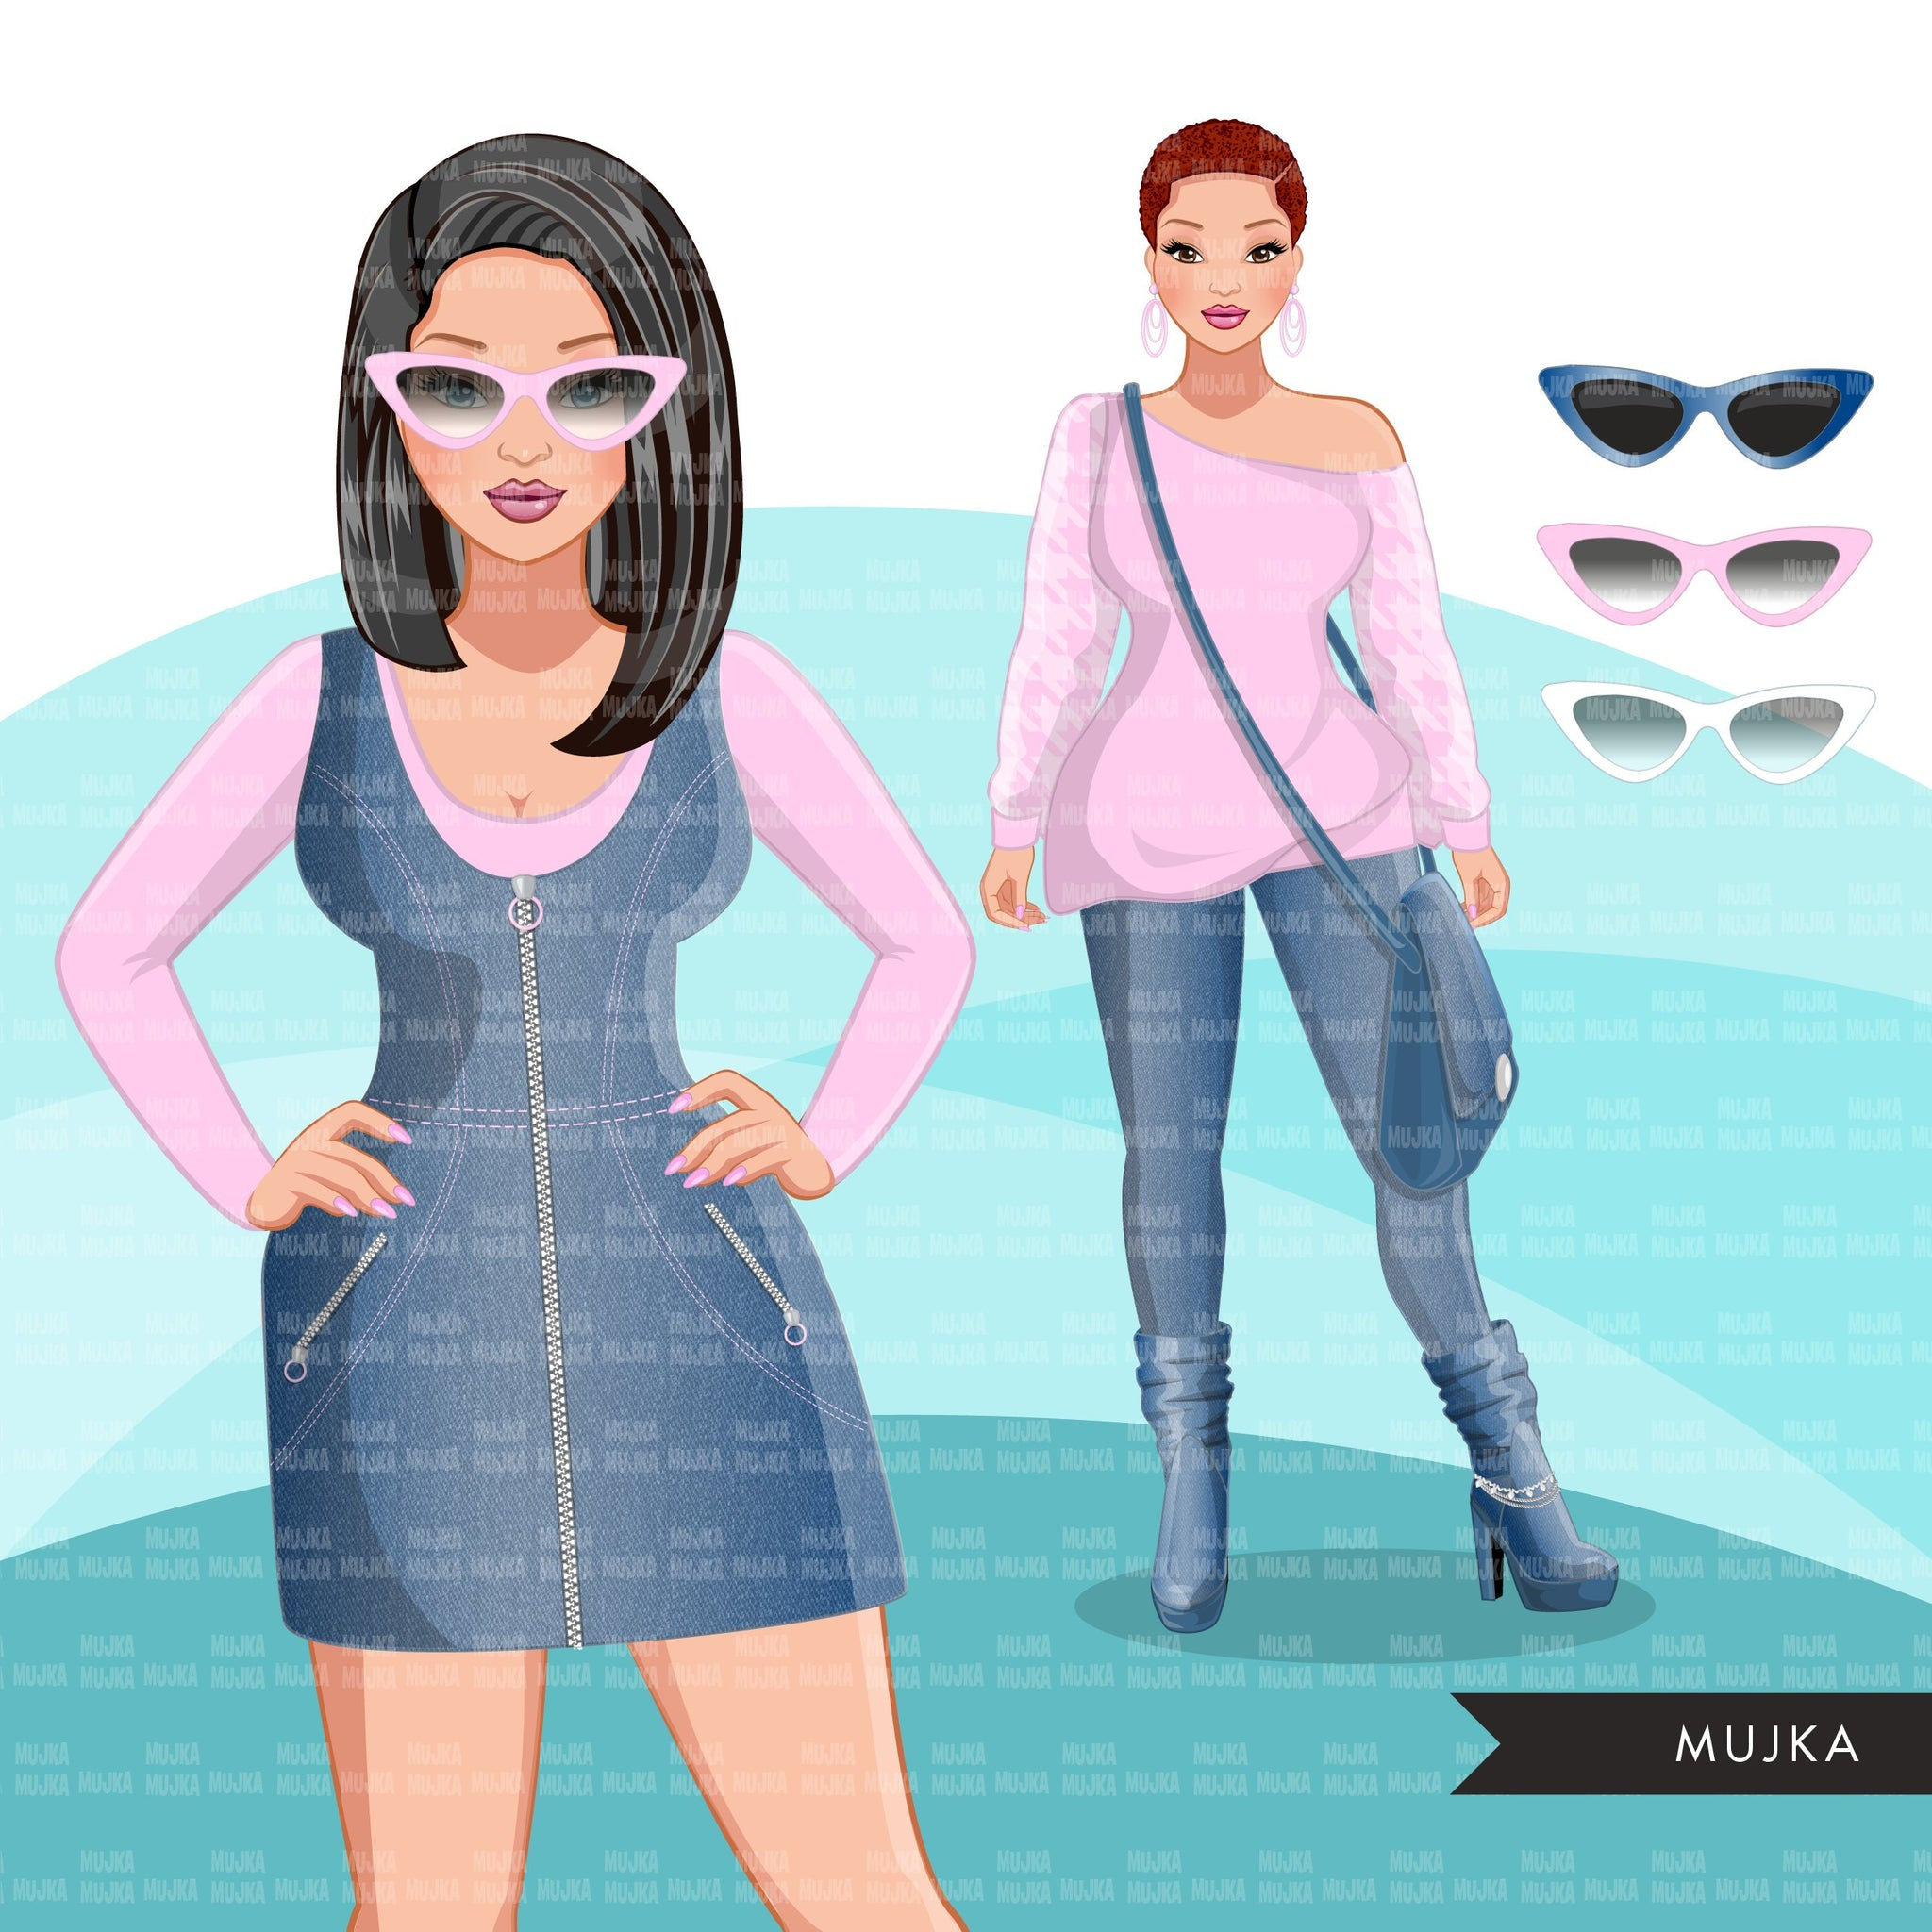 Fashion Clipart, woman graphic, blue pink, sisters, friends, sisterhood Sublimation designs for Cricut & Cameo, commercial use PNG